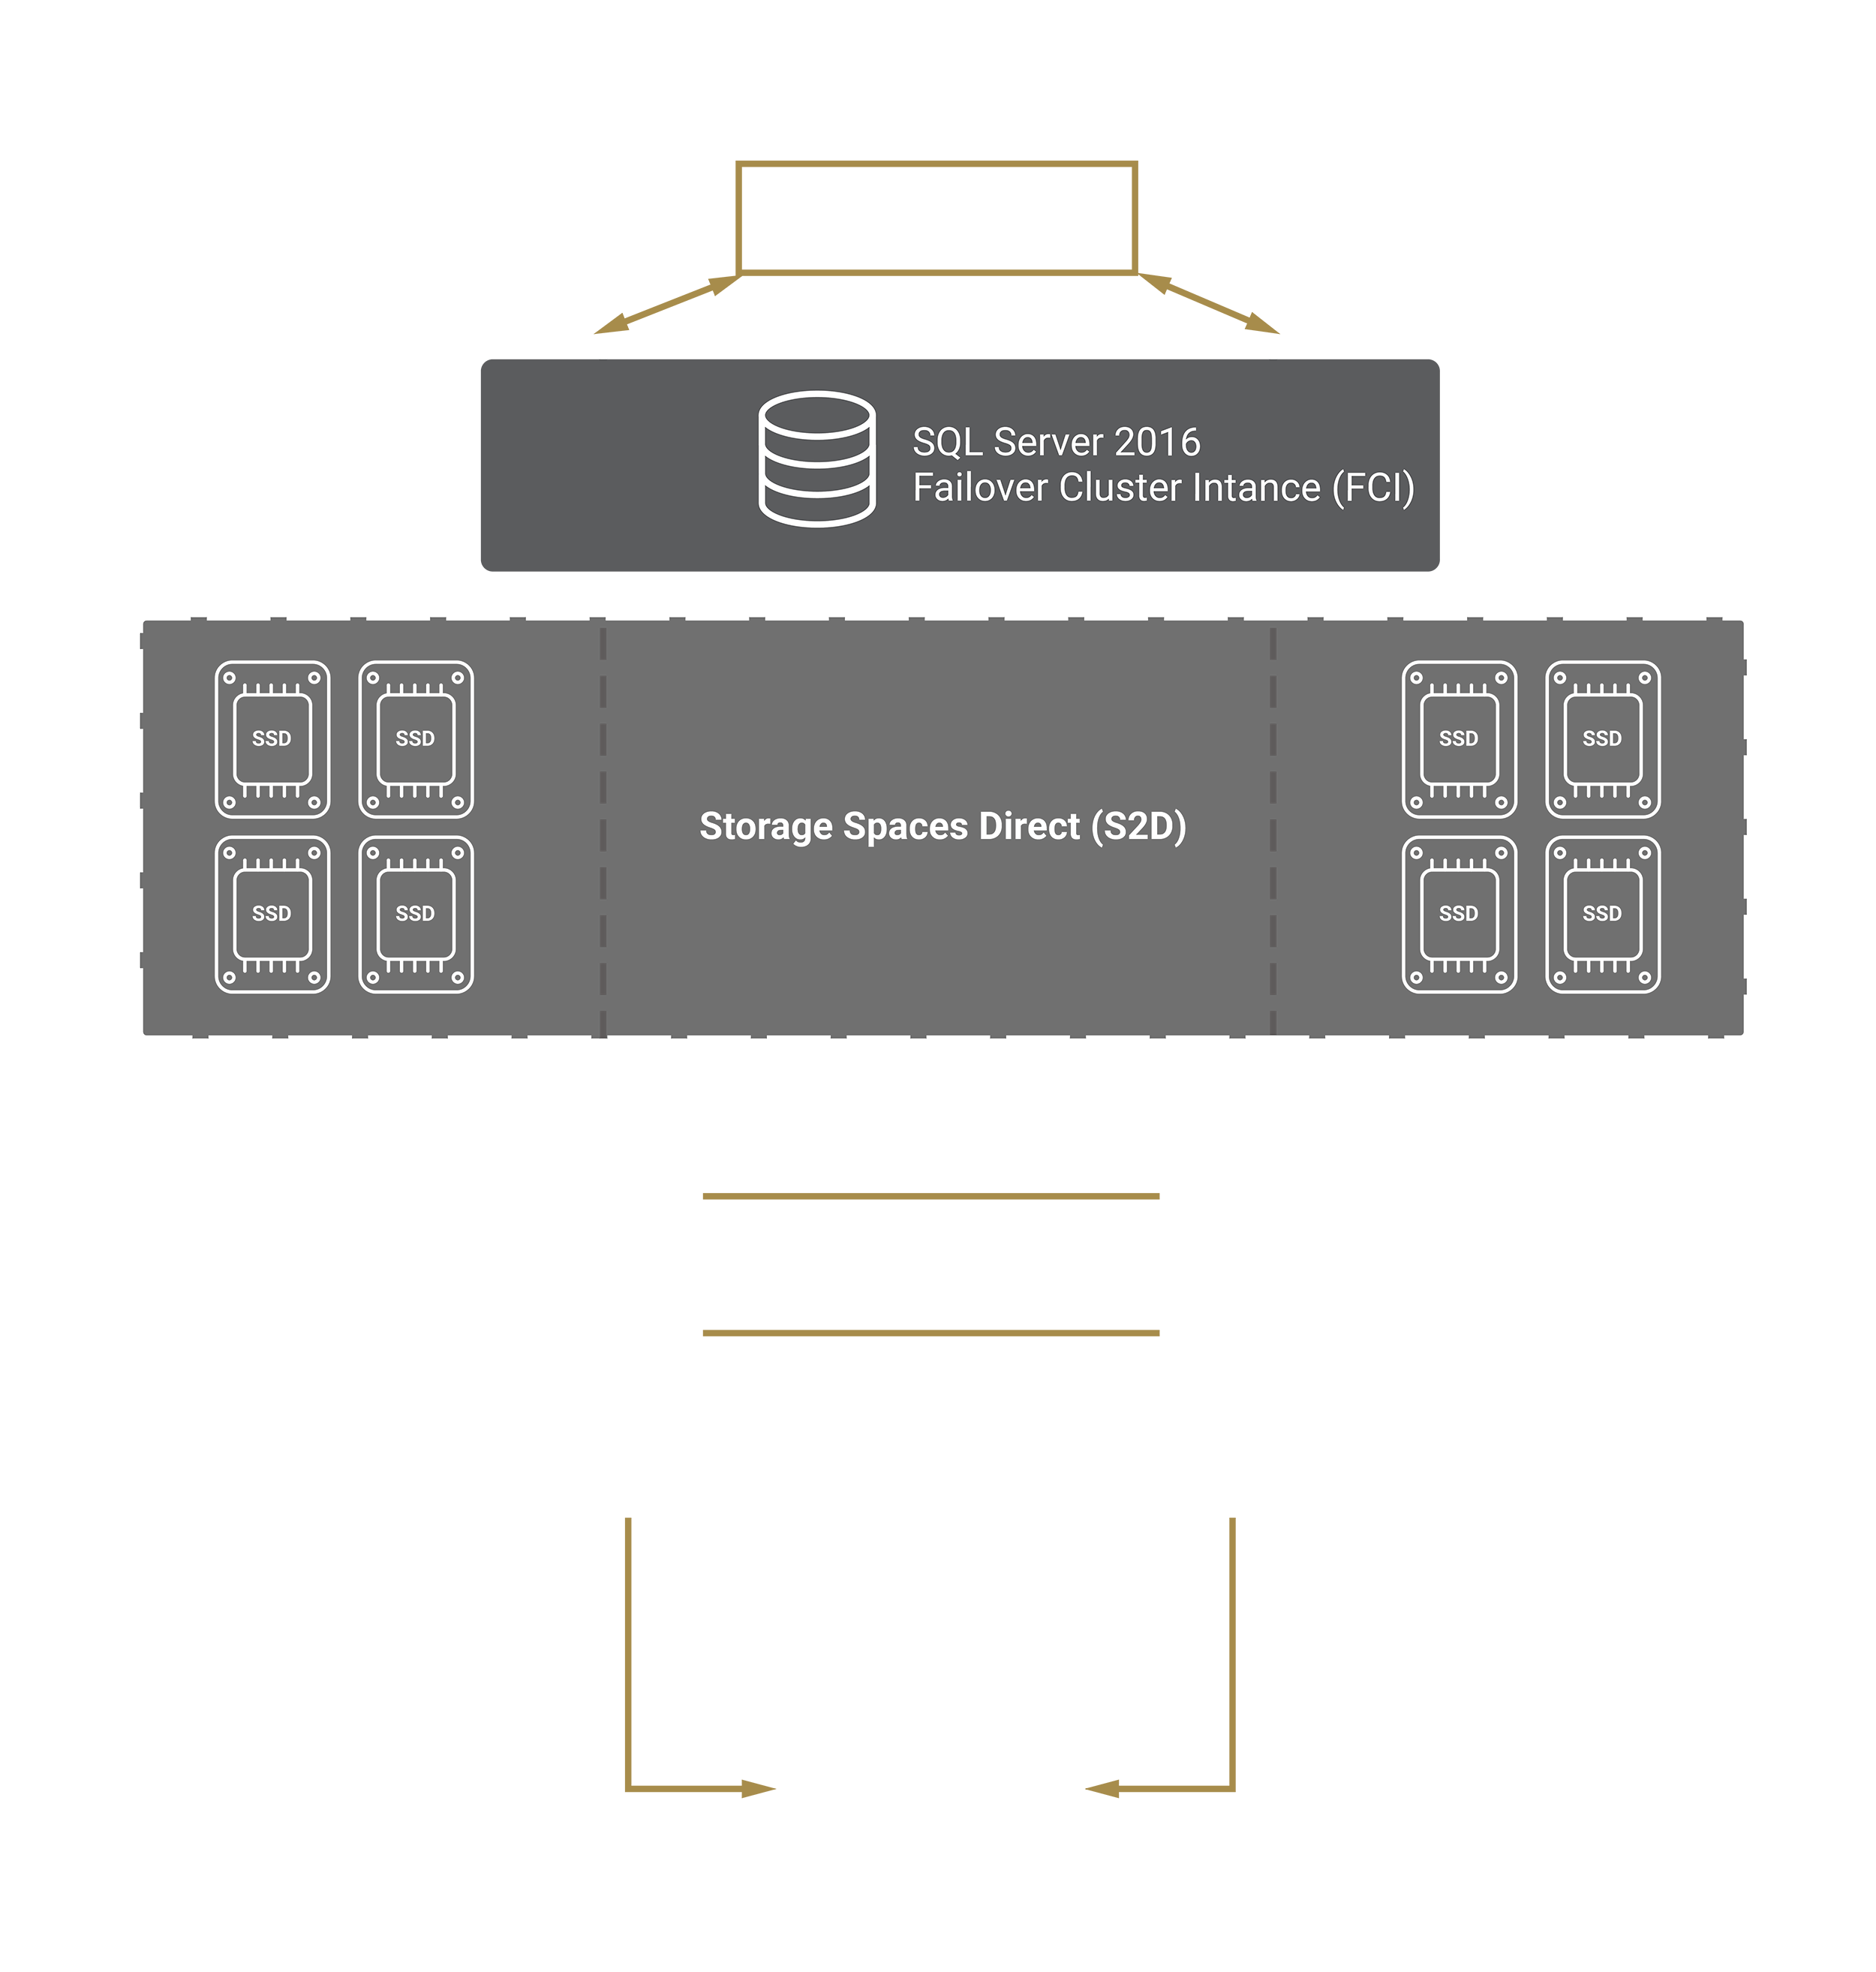 S2D needs at least 4 drives in each host to be deployed